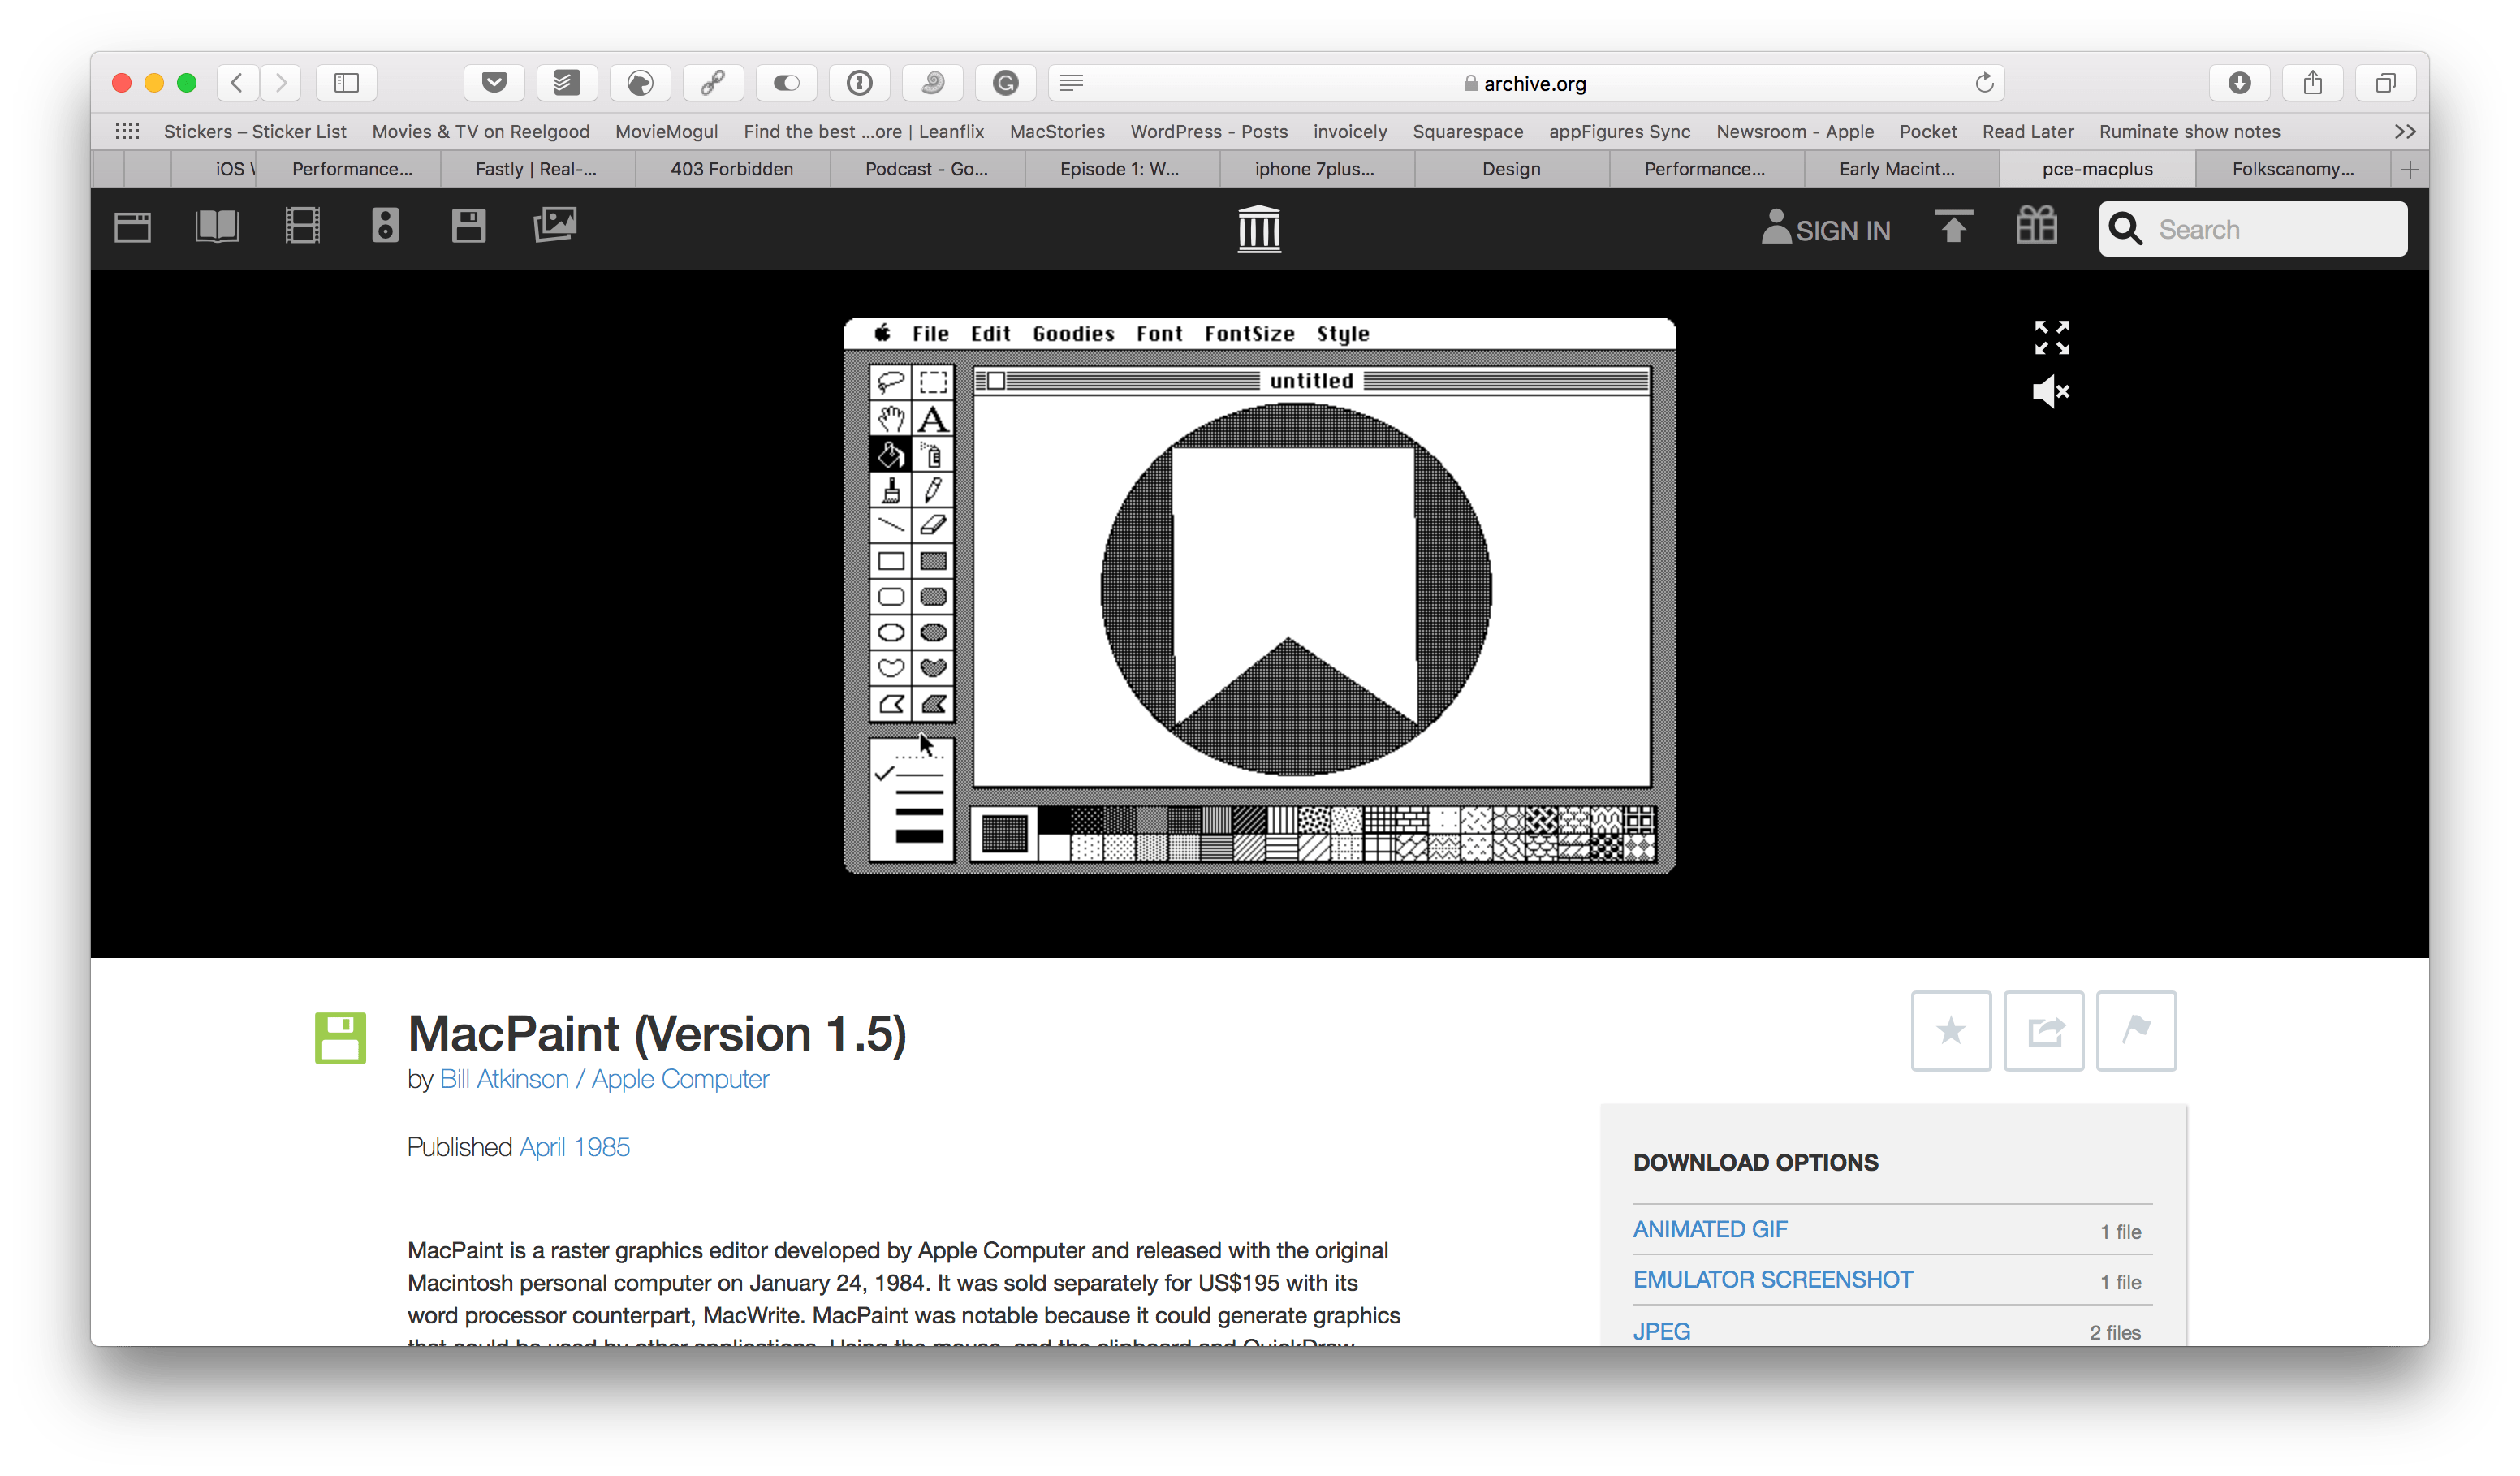 Mac transparent early. Internet archive adds macintosh